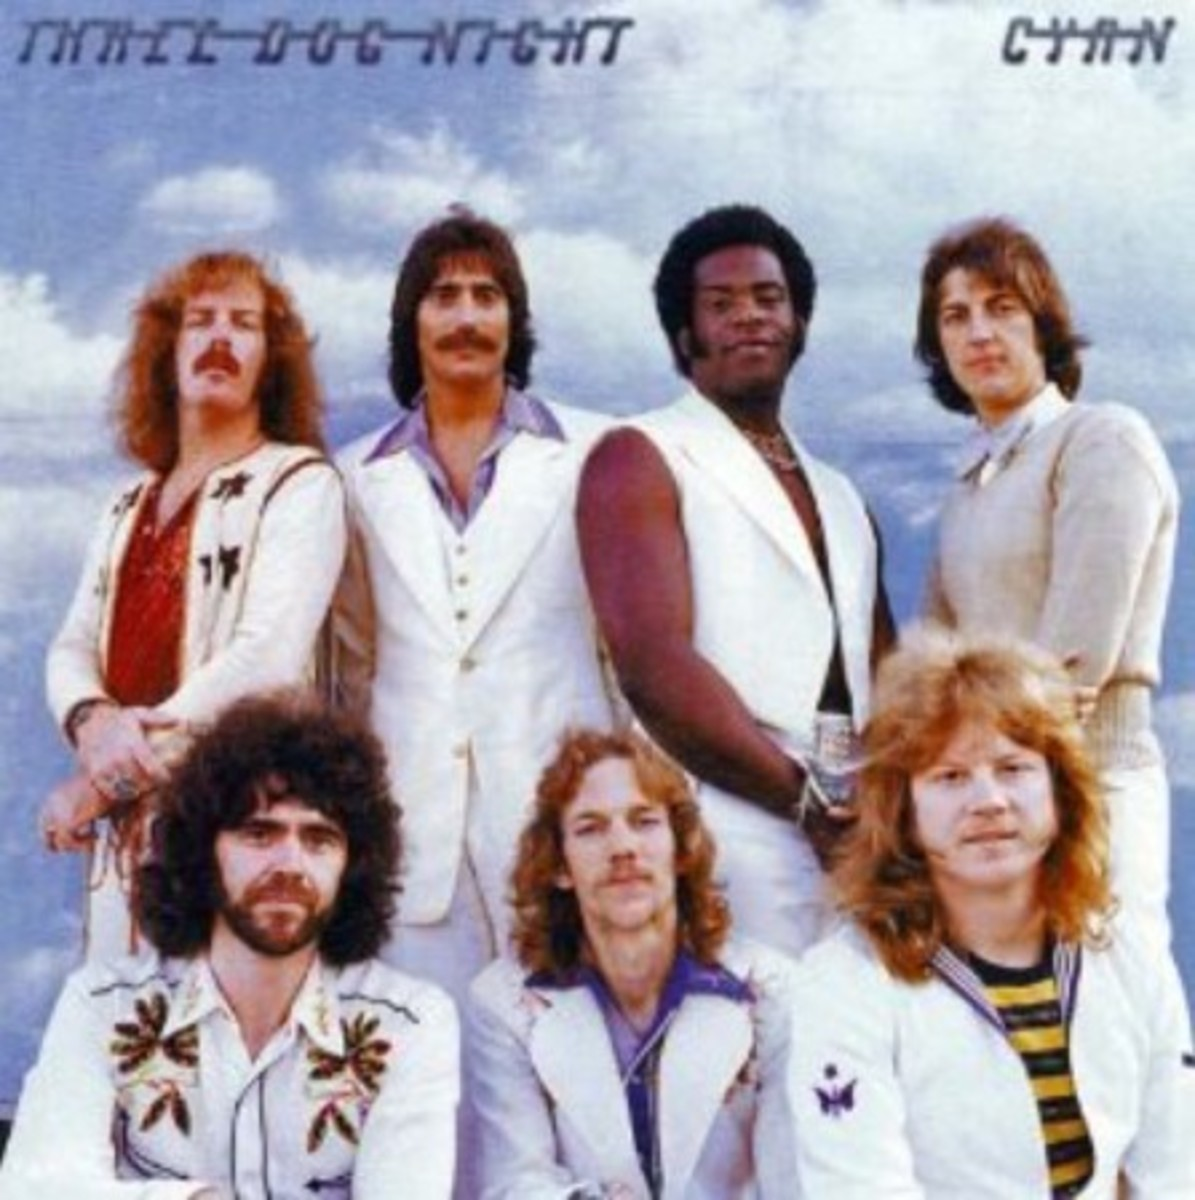 Chuck Negron, top row, second from left